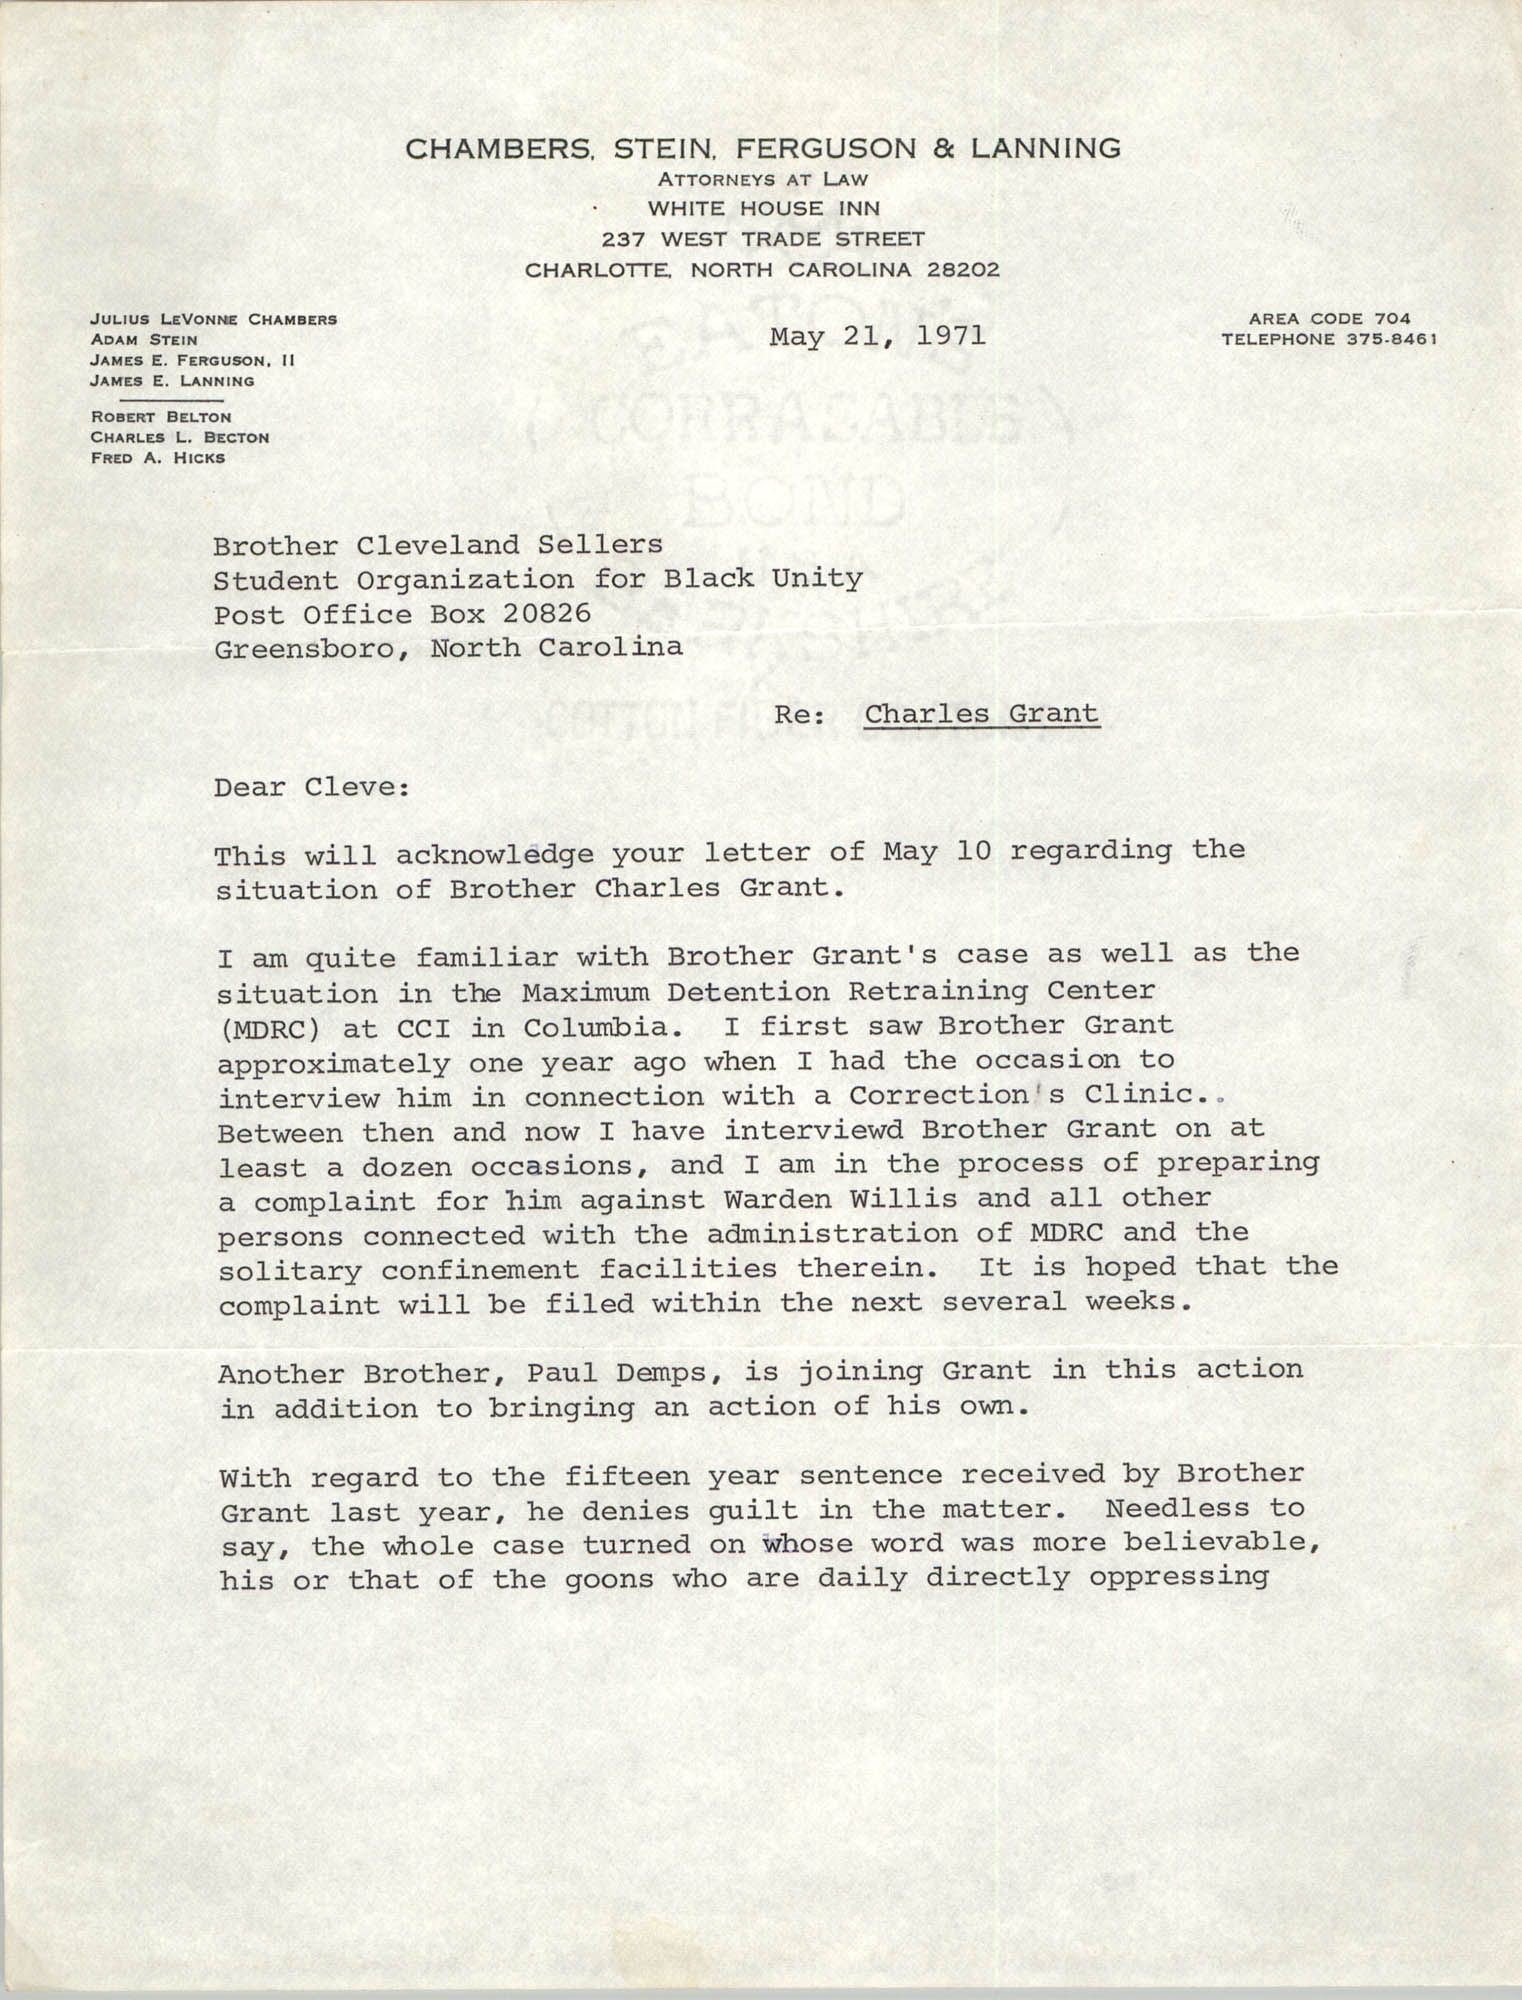 Letter from John R. Harper II to Cleveland Sellers, May 21, 1971